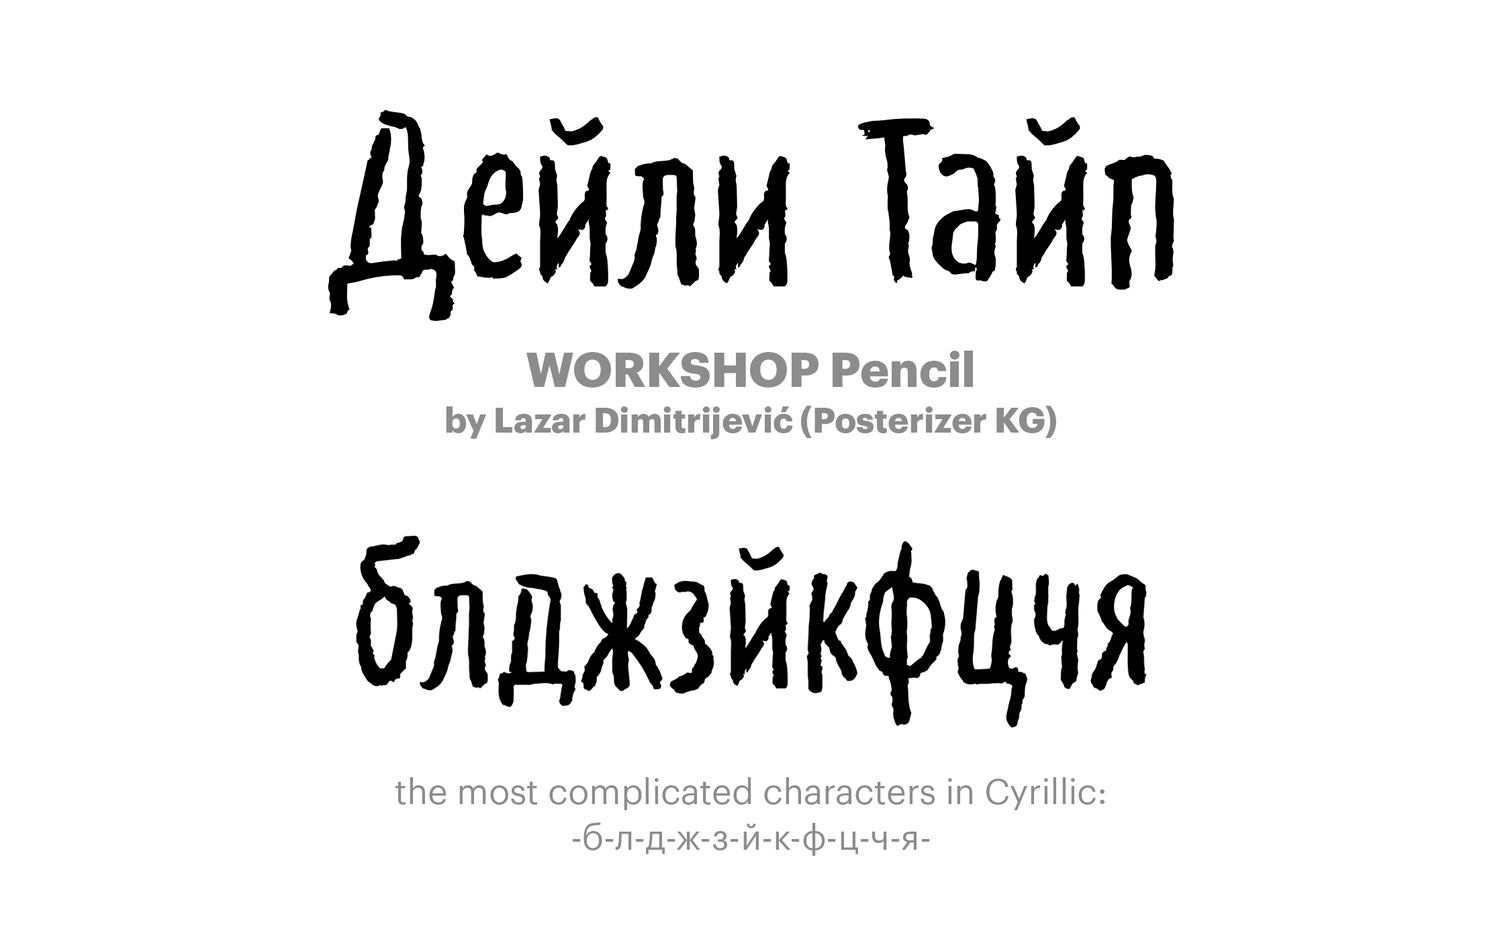 WORKSHOP-Pencil-by-Lazar-Dimitrijević-(Posterizer-KG)